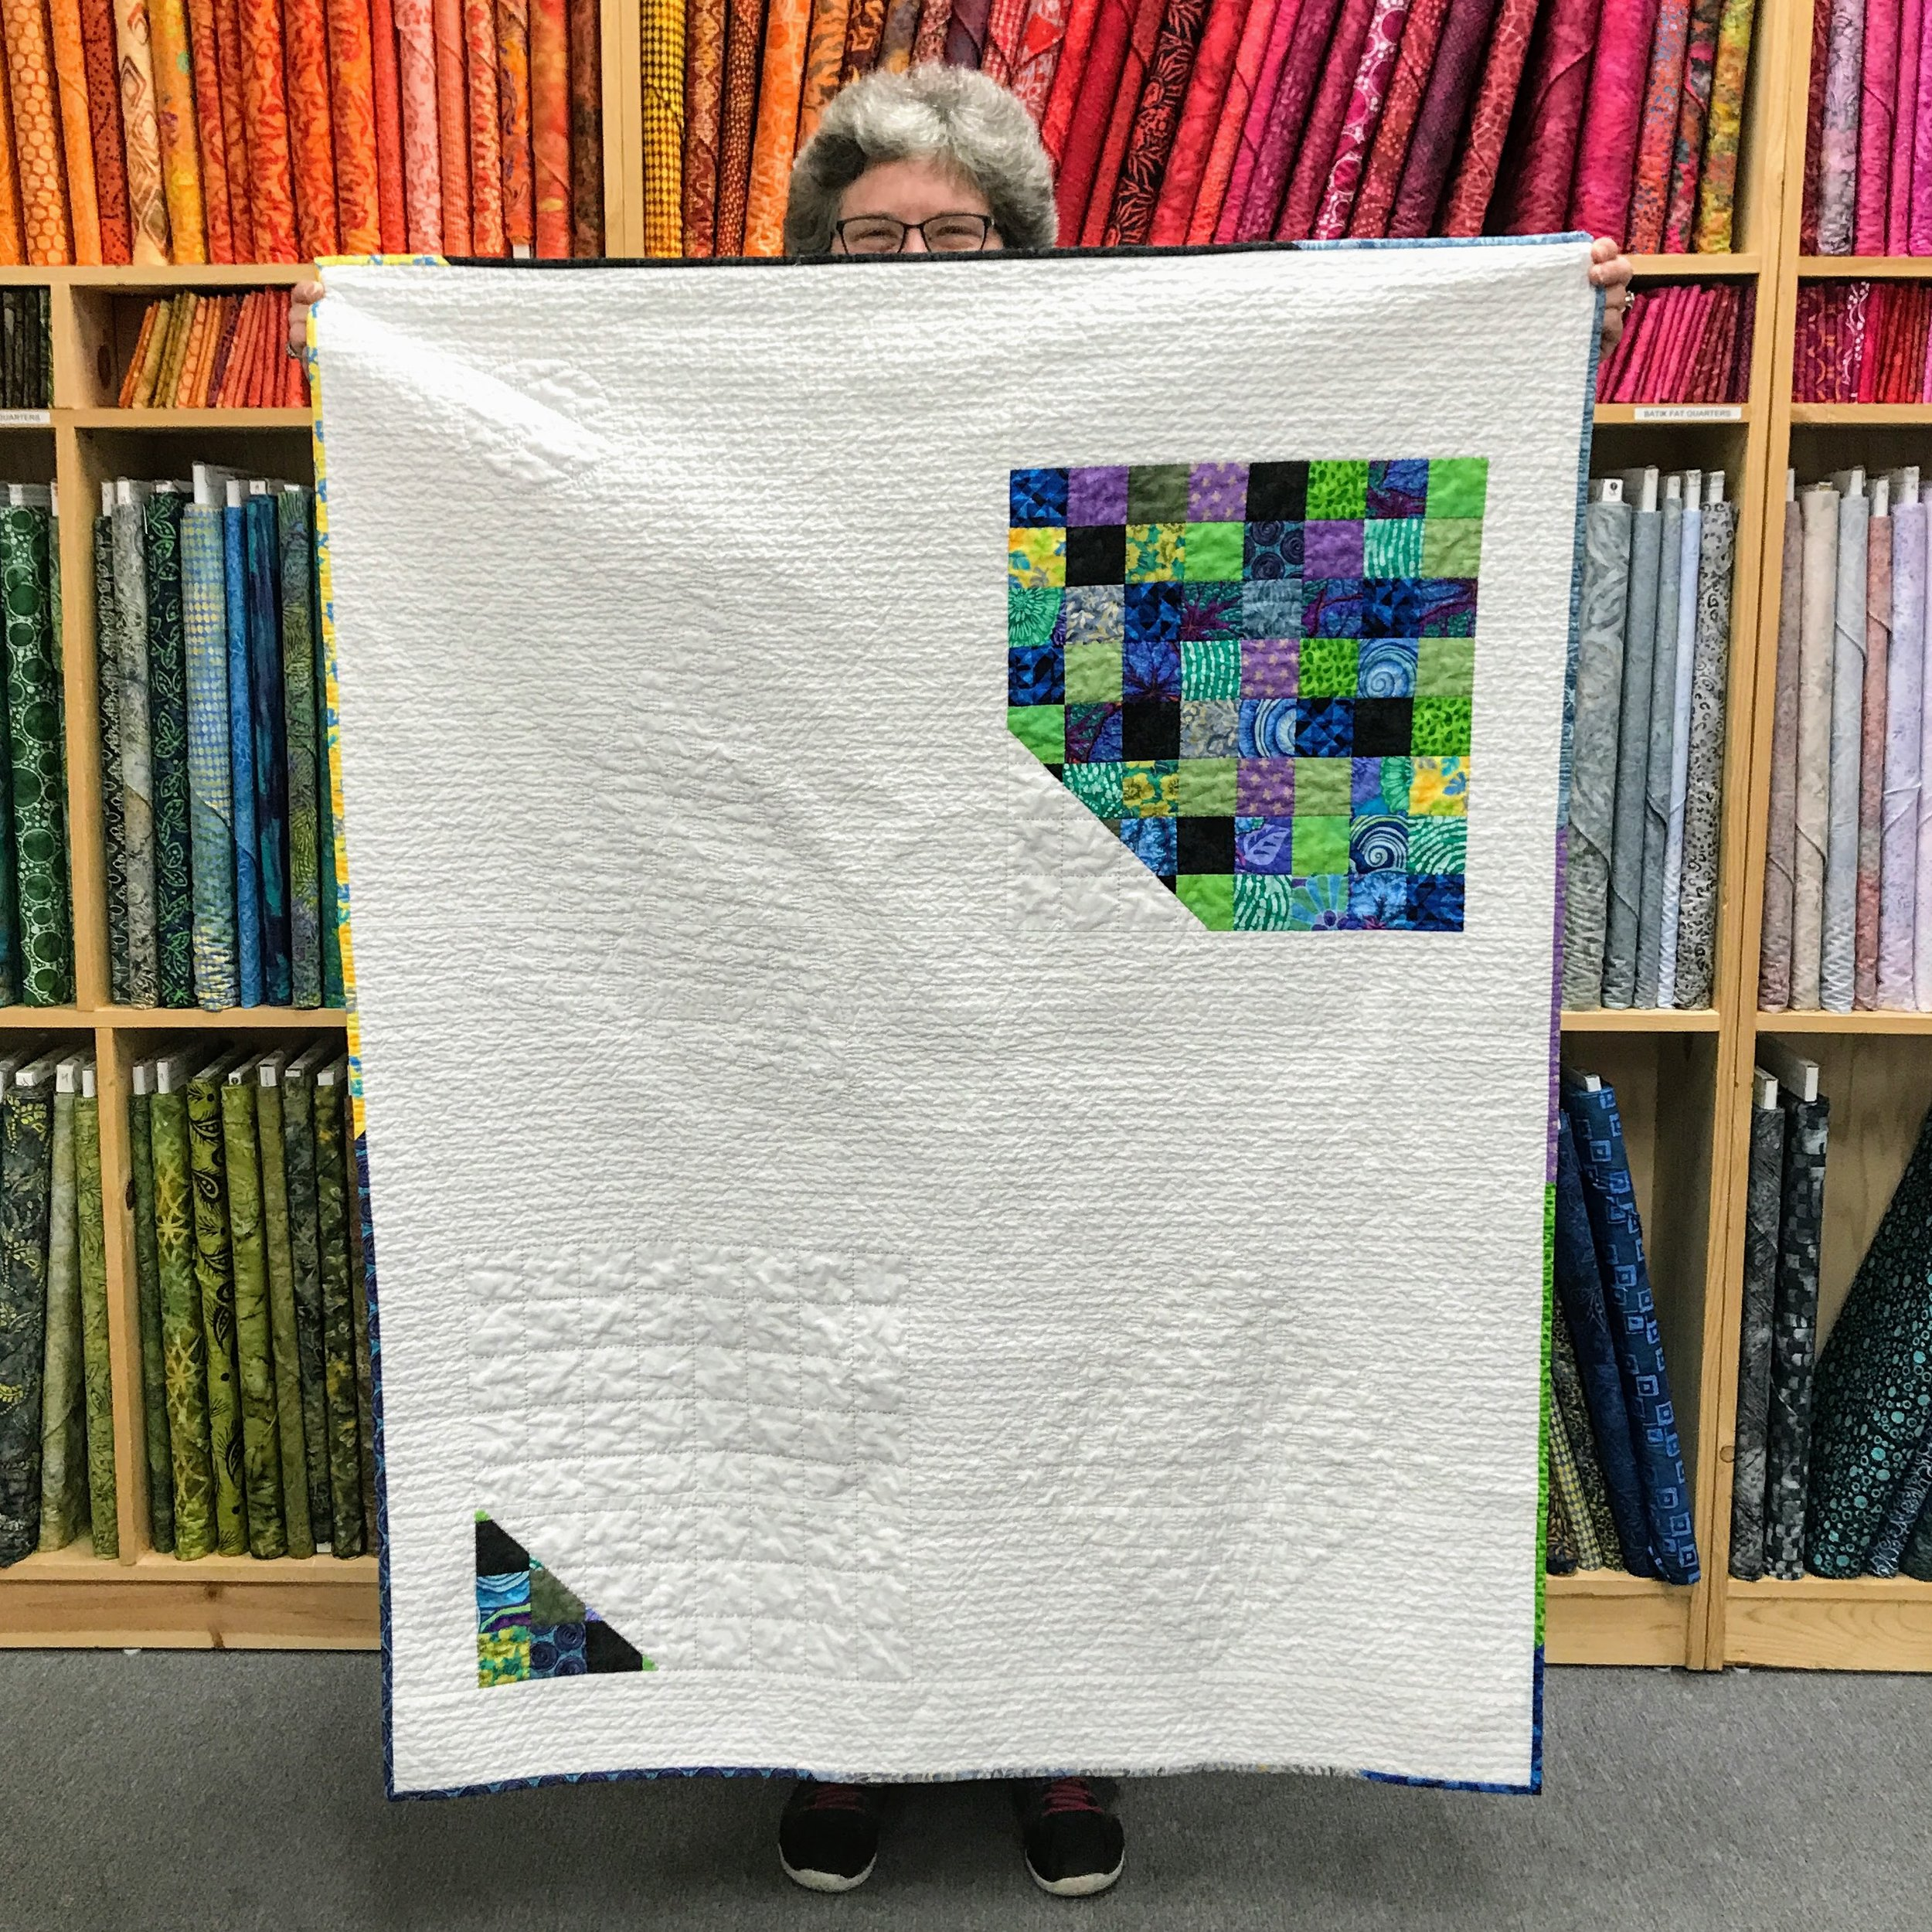 New member Johanna hand quilted this throw, giving it wonderful drape and texture.